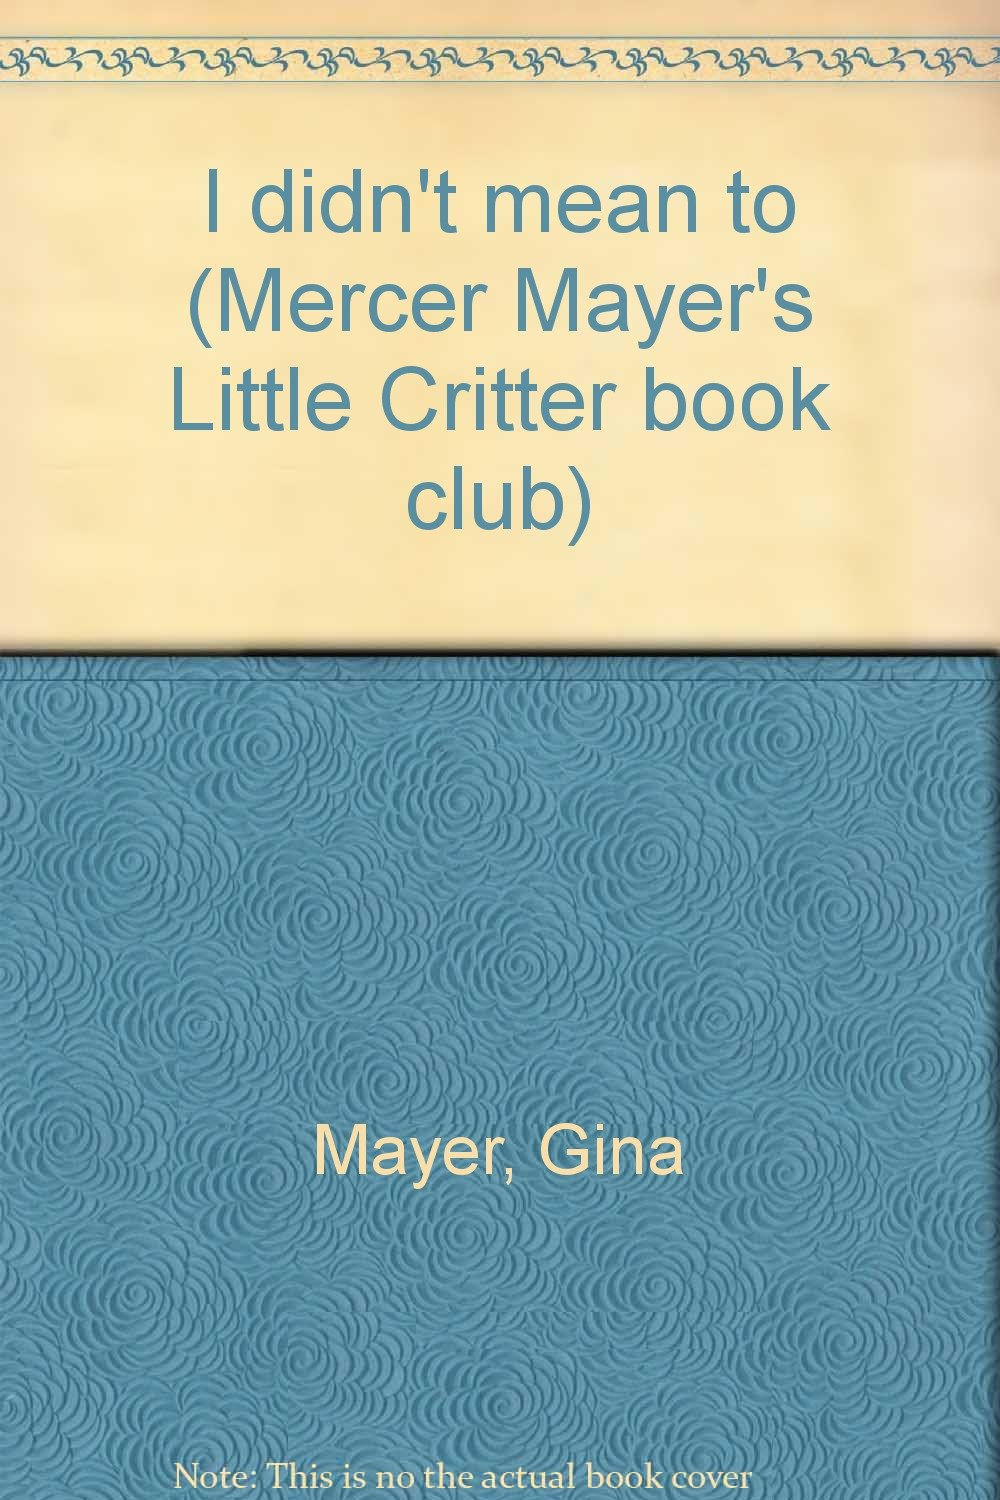 I didn't mean to, Mayer, Gina & Mayer, Mercer